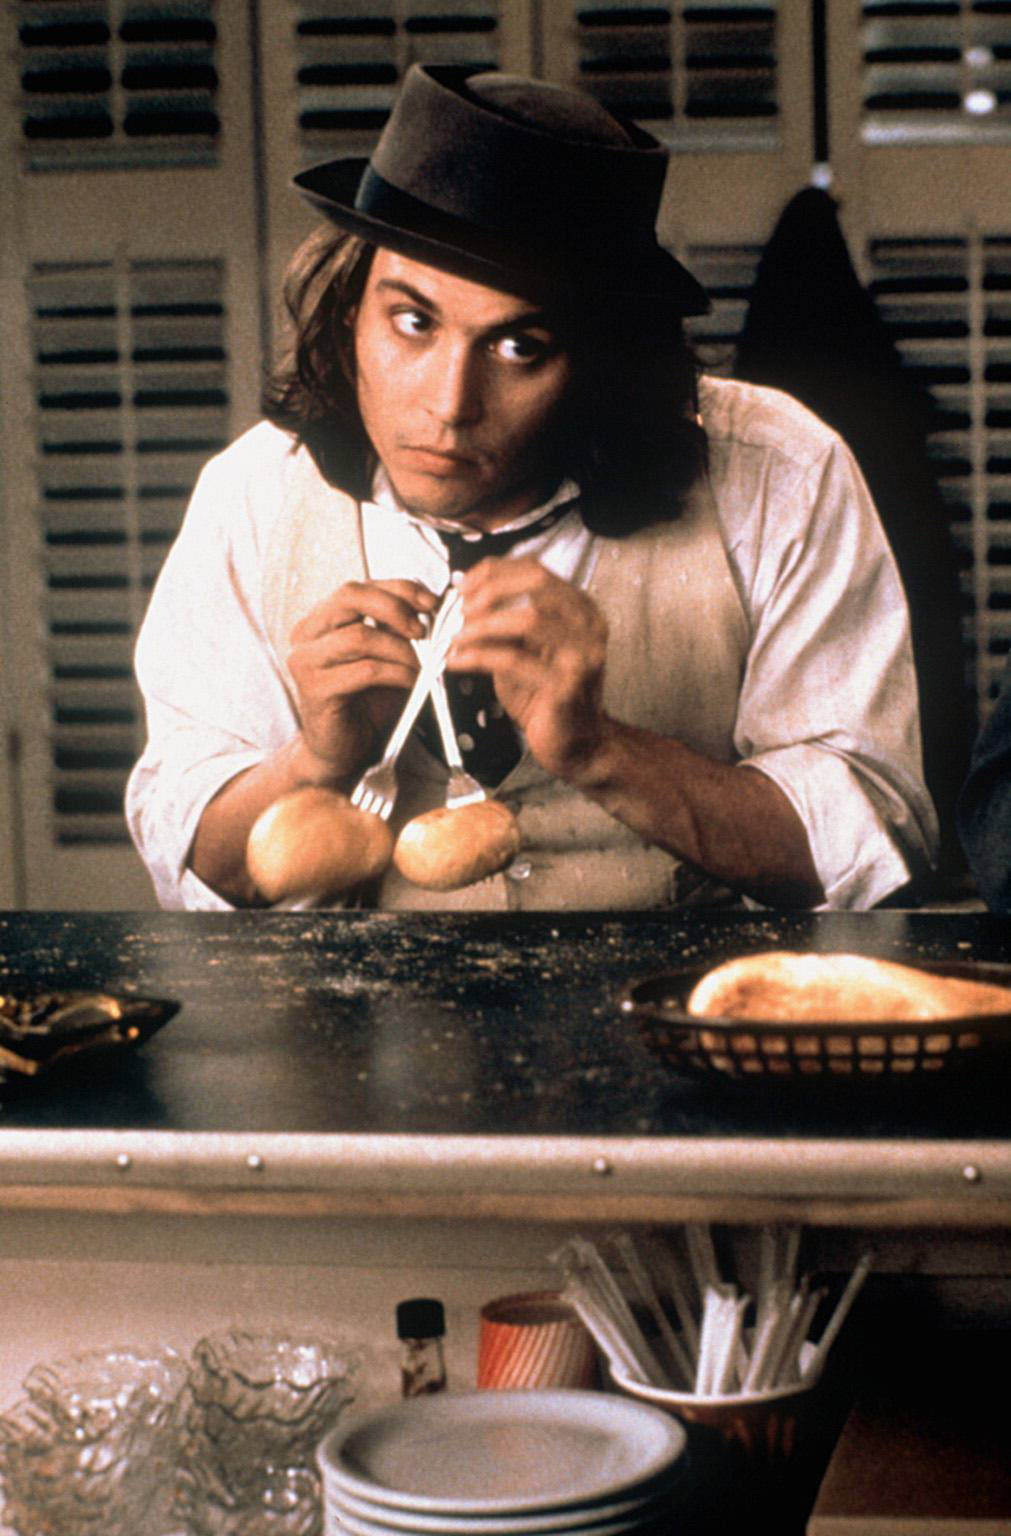 Johnny Depp in Benny & Joon